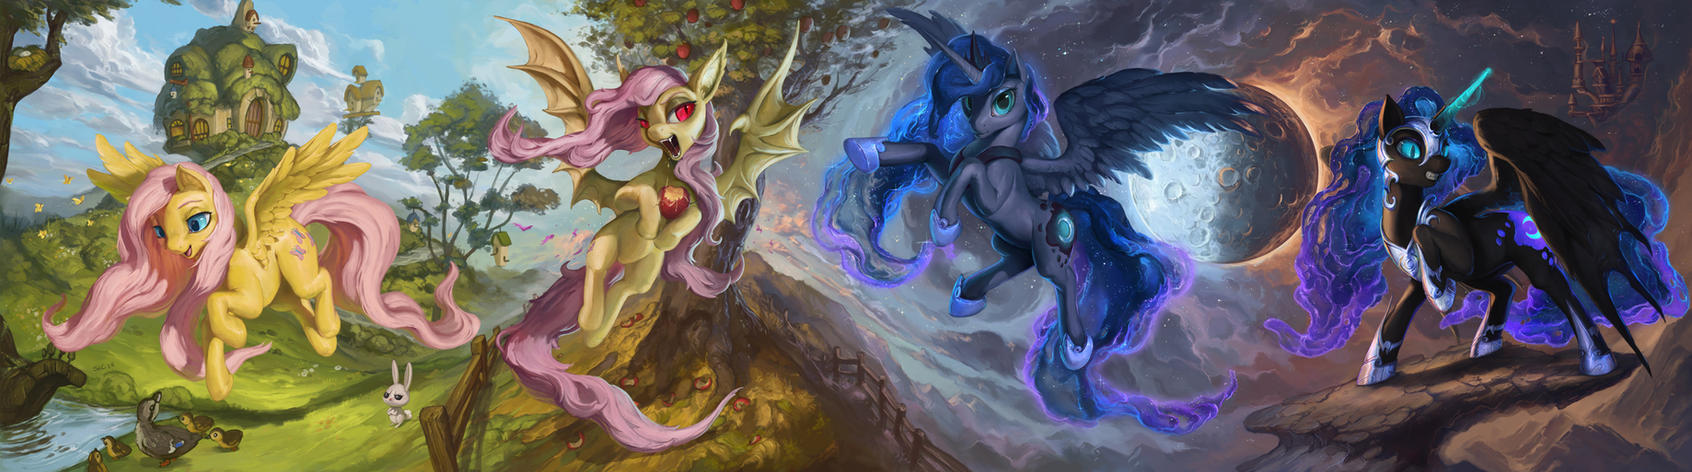 The Light and the Night by The-SixthLeafClover